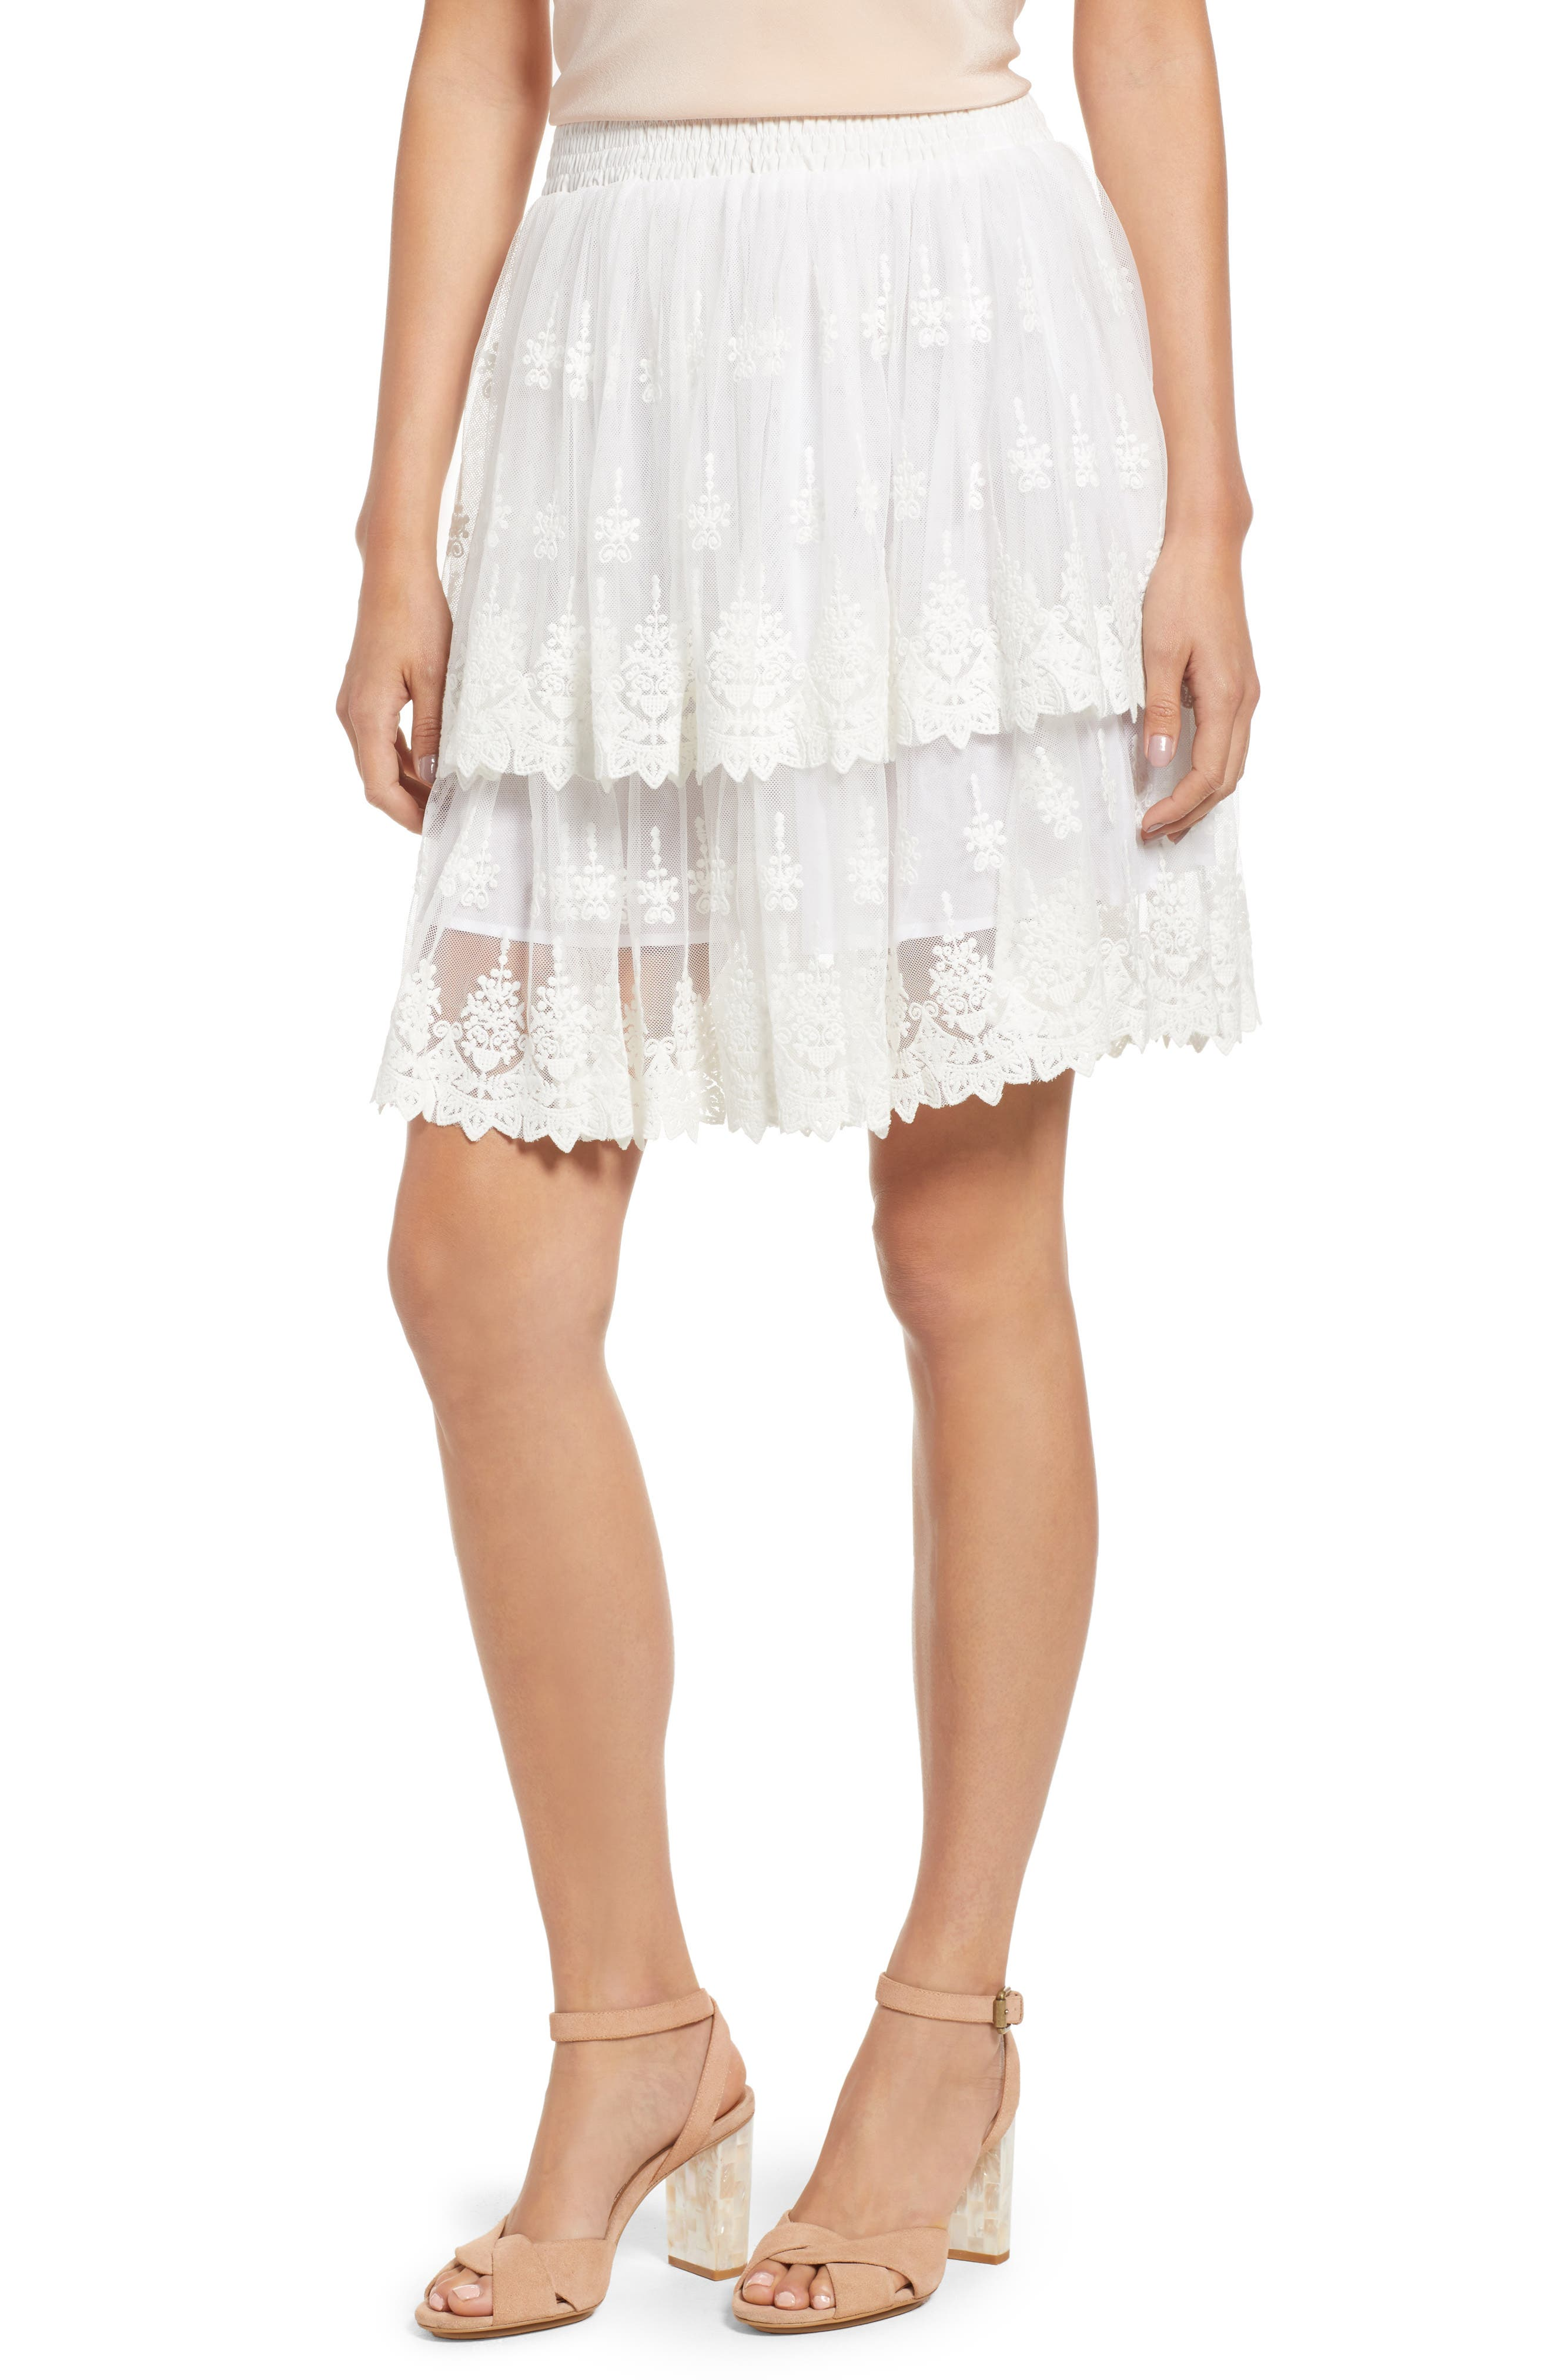 KAS NEW YORK FRANCINE TIERED LACE SKIRT